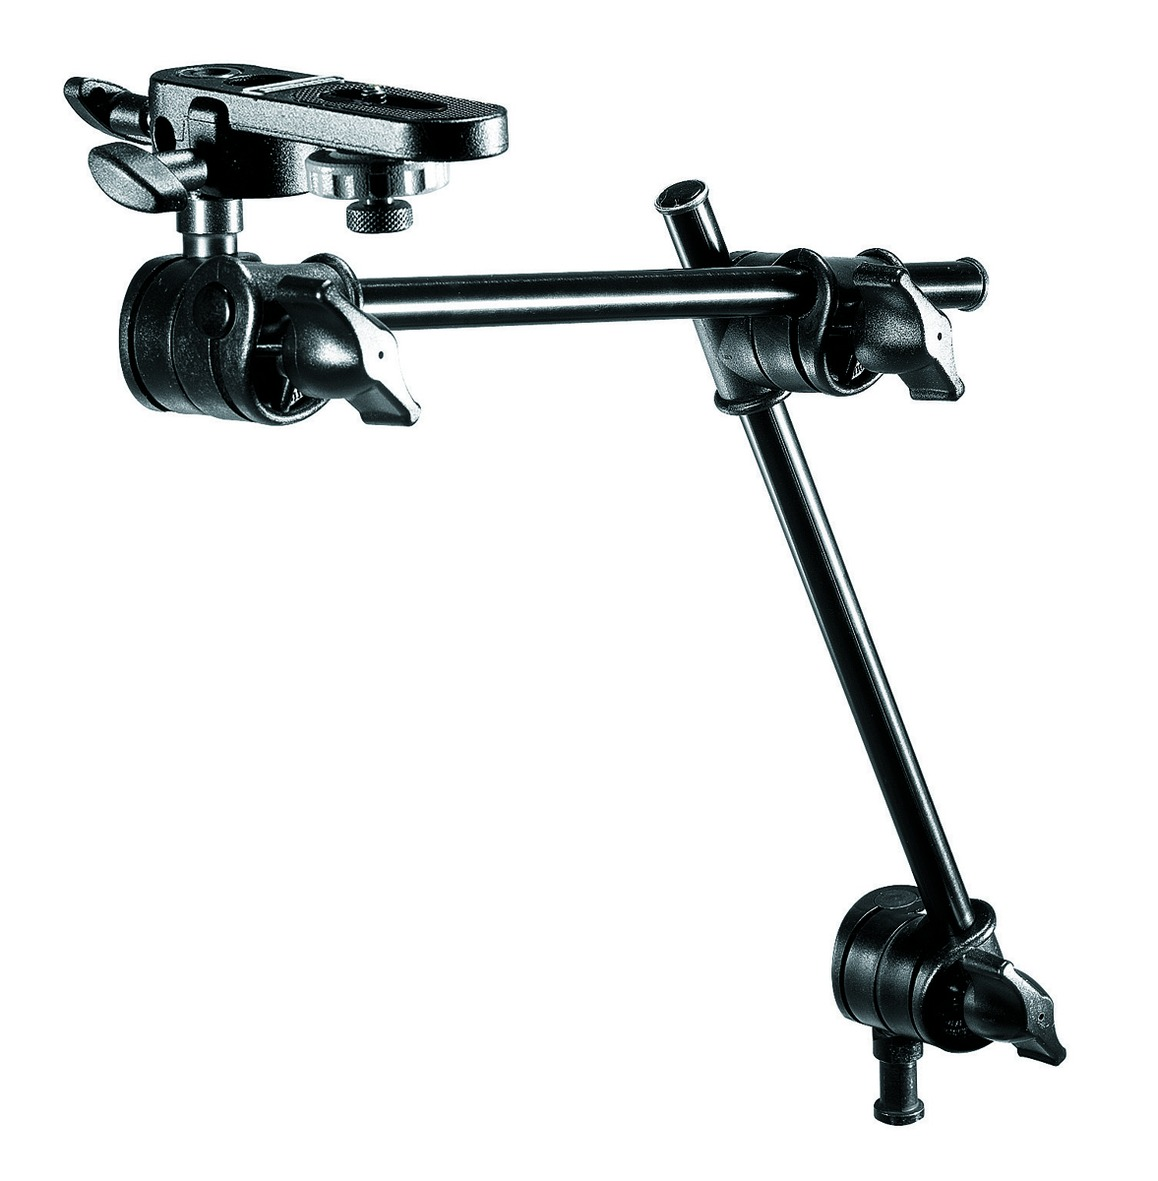 Manfrotto 396B 2 2 Section Double Articulated Arm with Camera Bracket